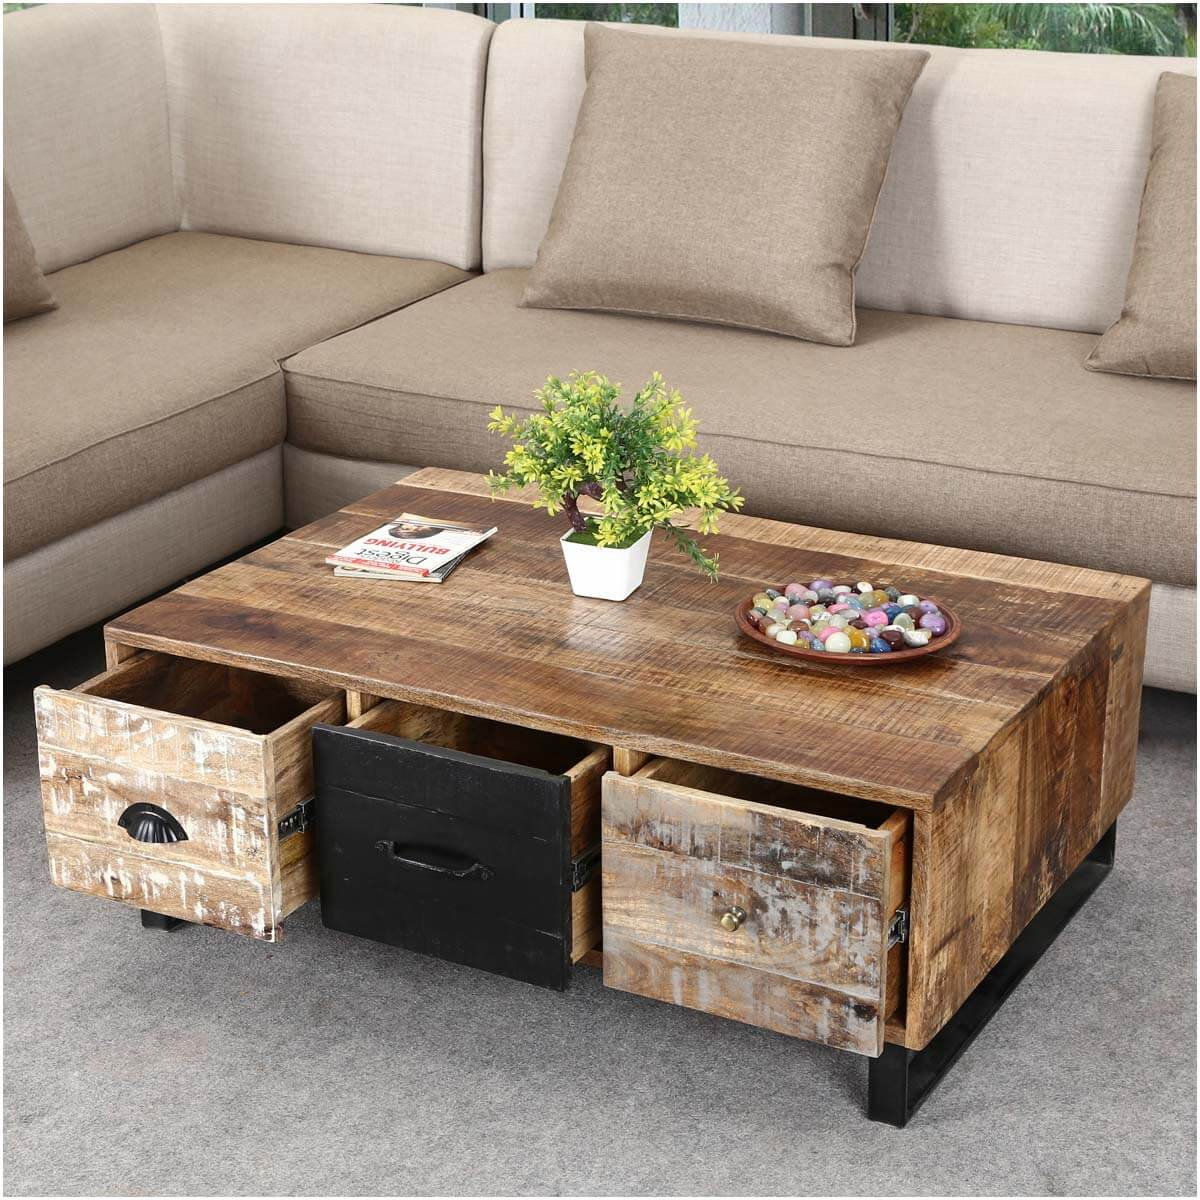 Coffee Table Chest Drawers: Industrial Pioneer Mango Wood & Iron Coffee Table 3-Drawer